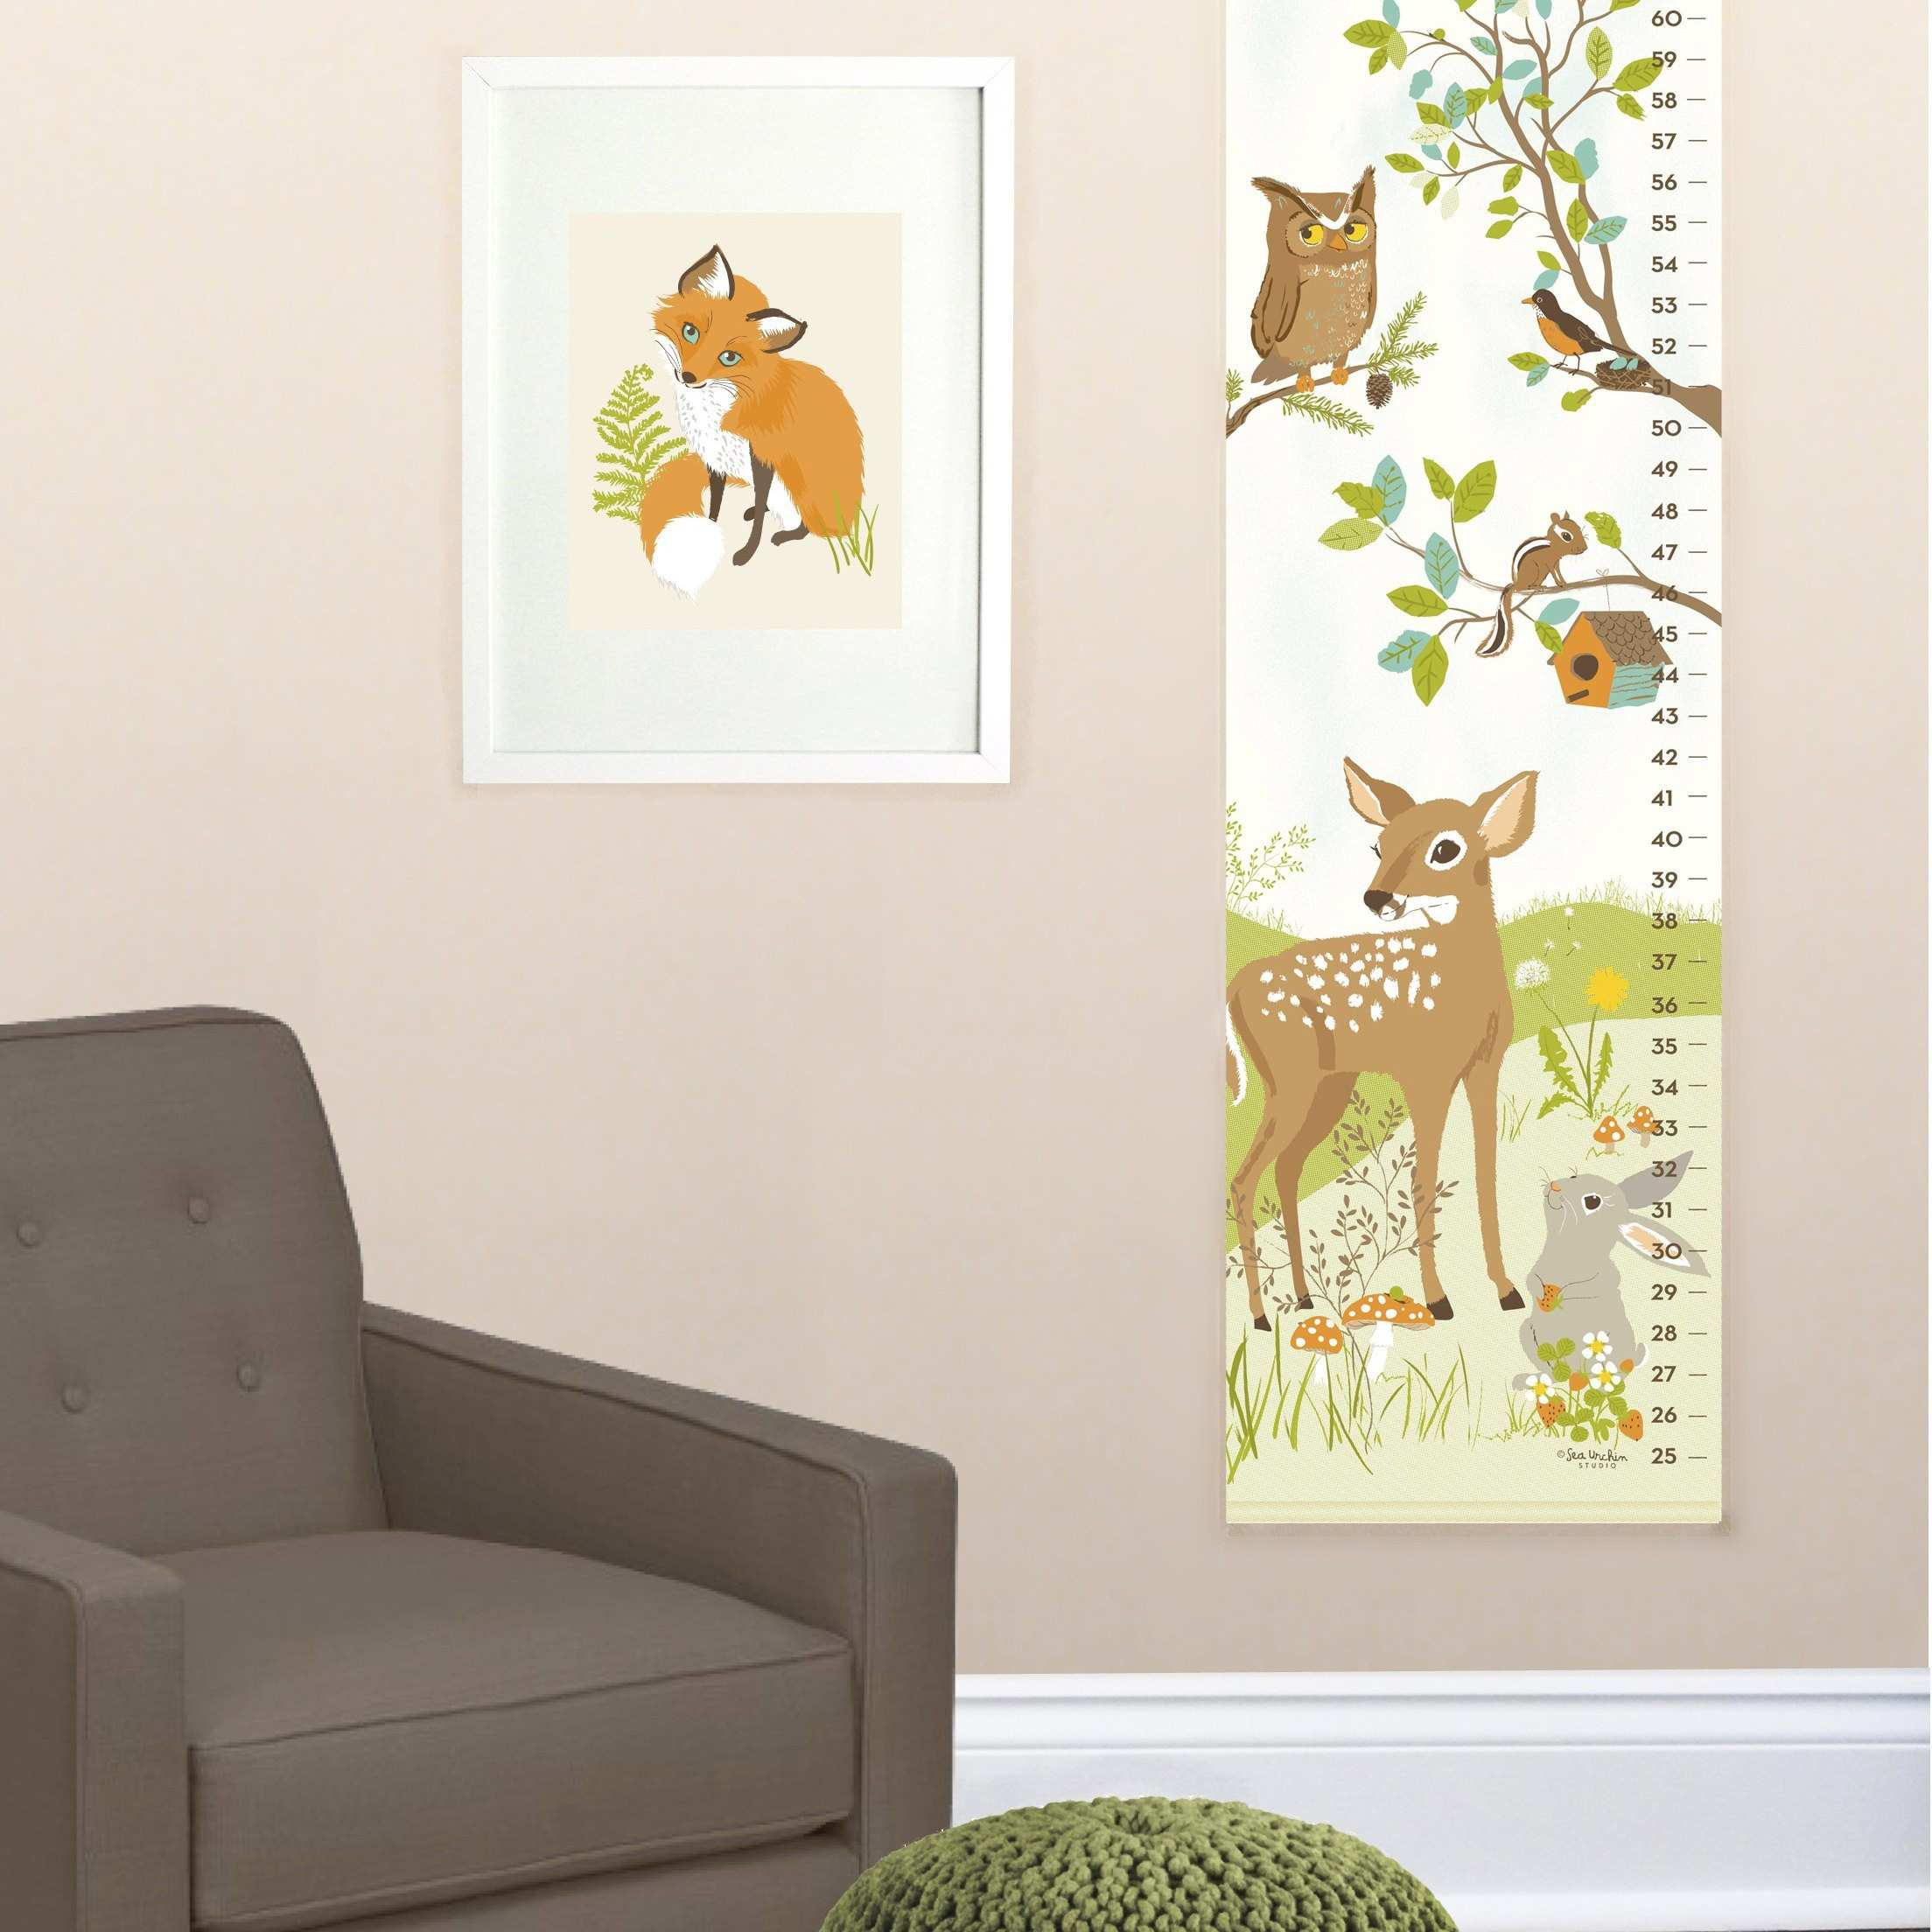 """Puzzle Wall Art Best Puzzle """"piece"""" Your Family and Friends to"""